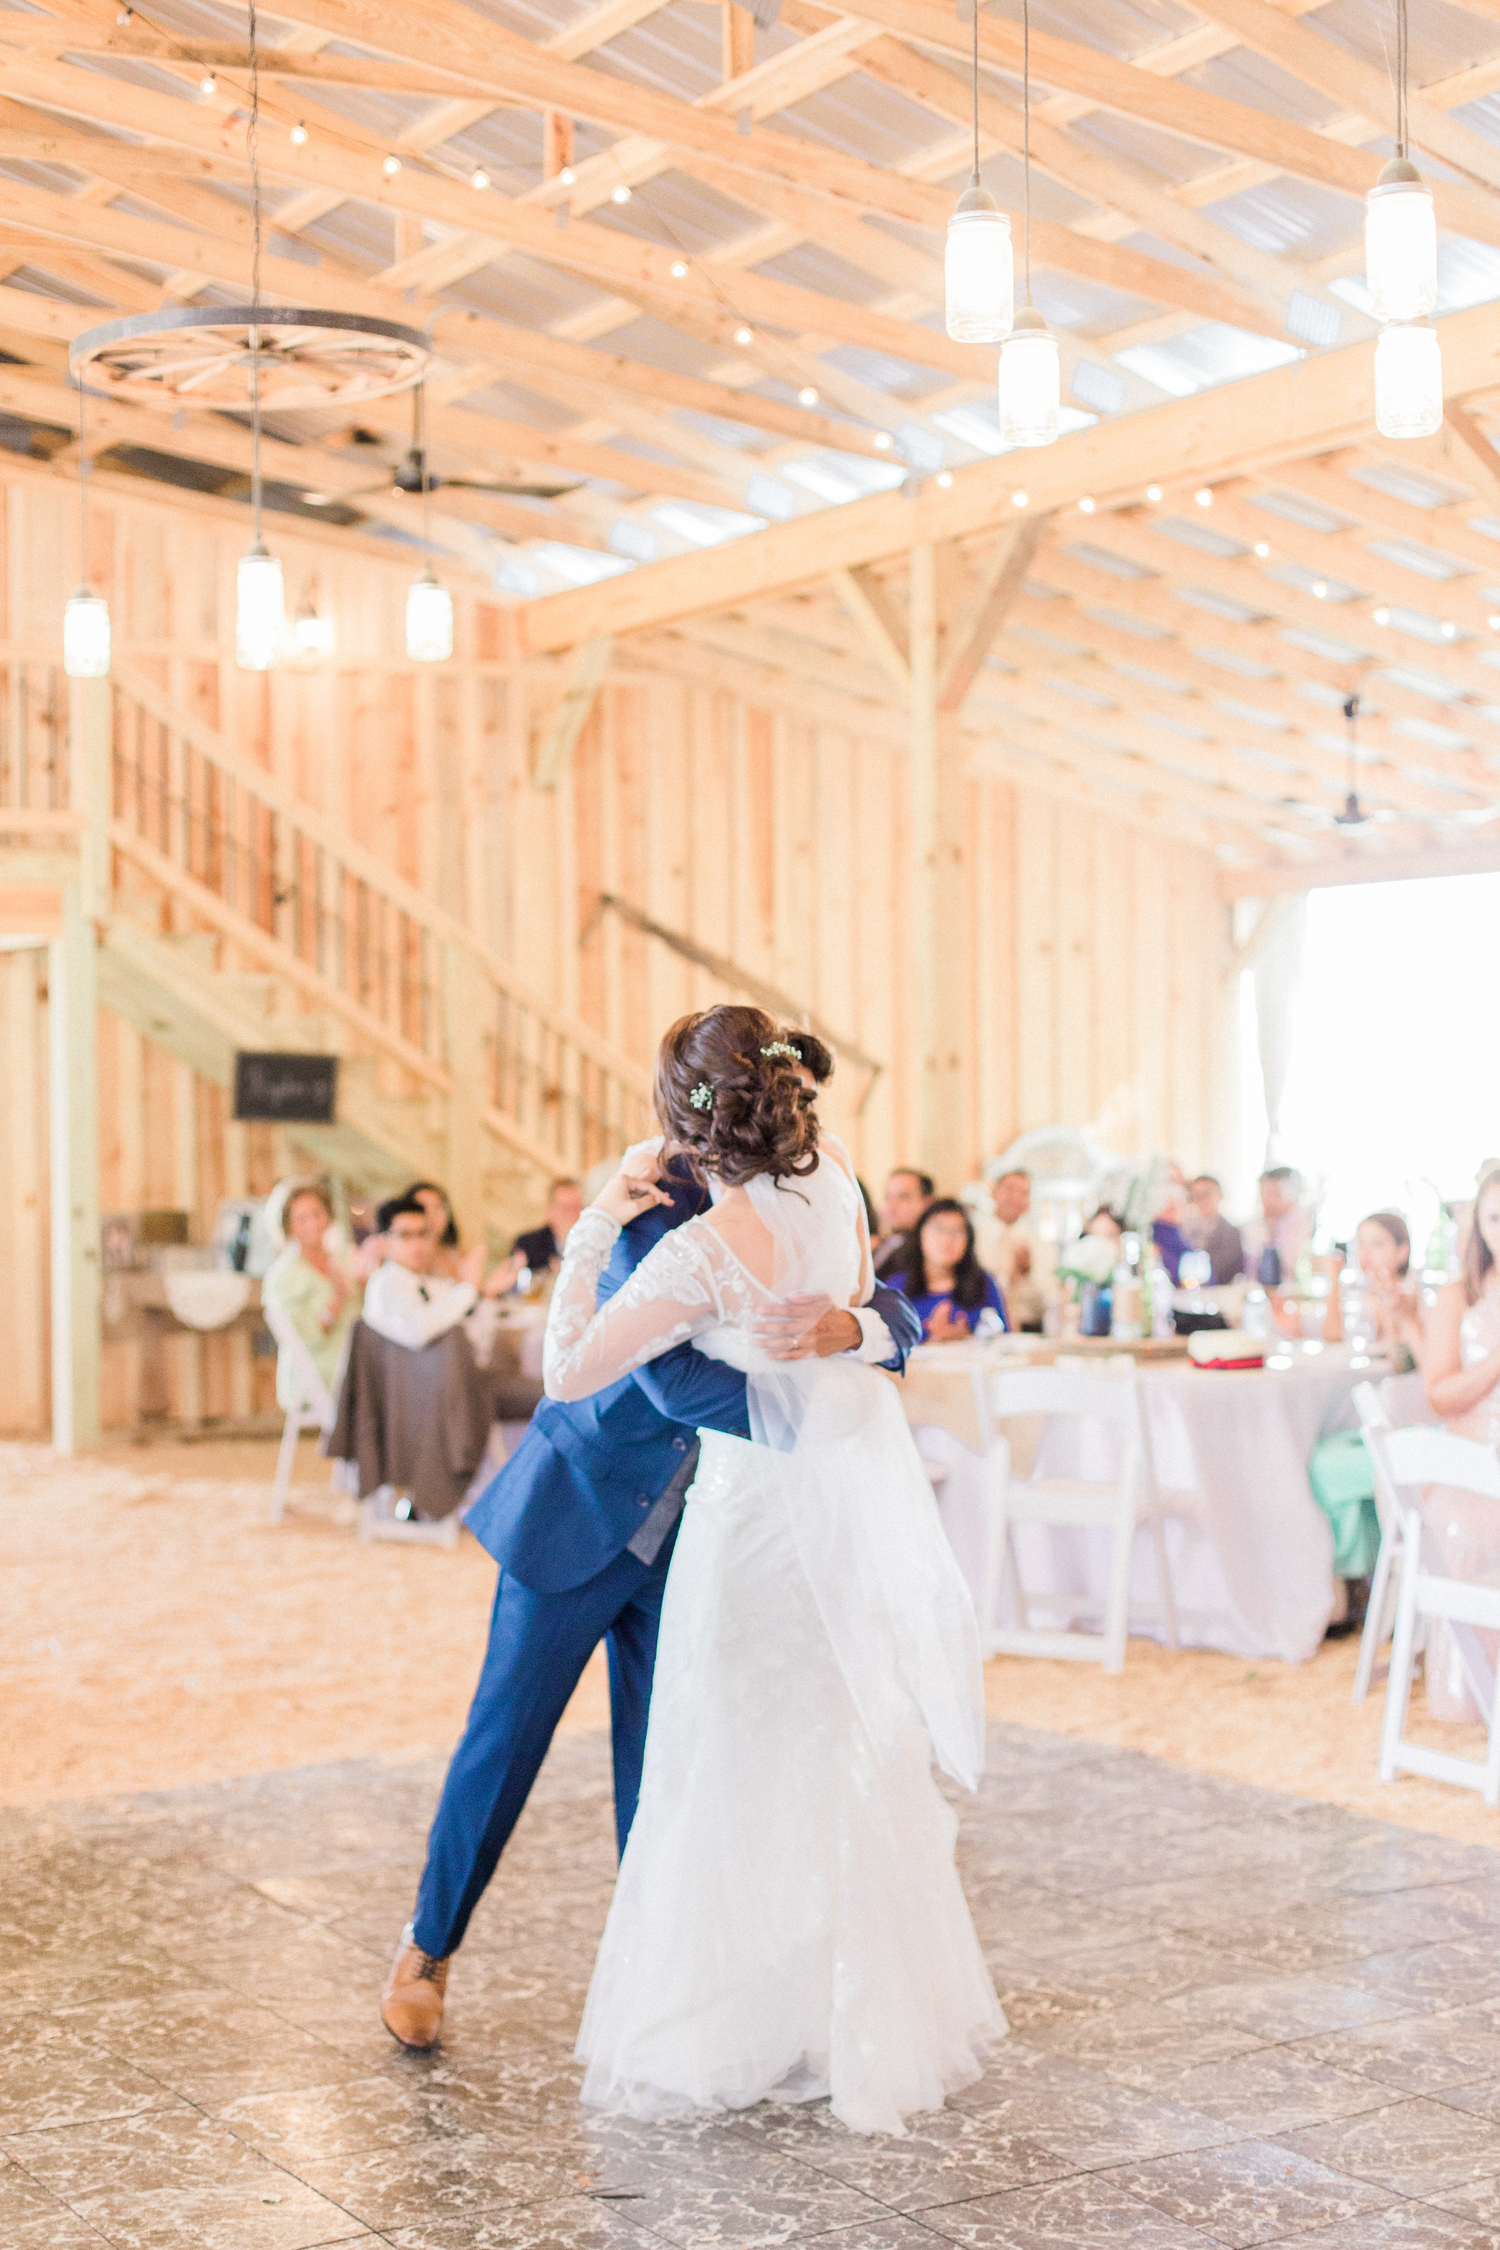 First dance as husband and wife under hanging mason jar light in a rustic barn with a tin roof. Summer, outdoor, barn wedding in north Georgia at Hays McDonald Farm in Jefferson, Georgia. Photo by Kesia Marie Photography - Fine Art Wedding Photographer.